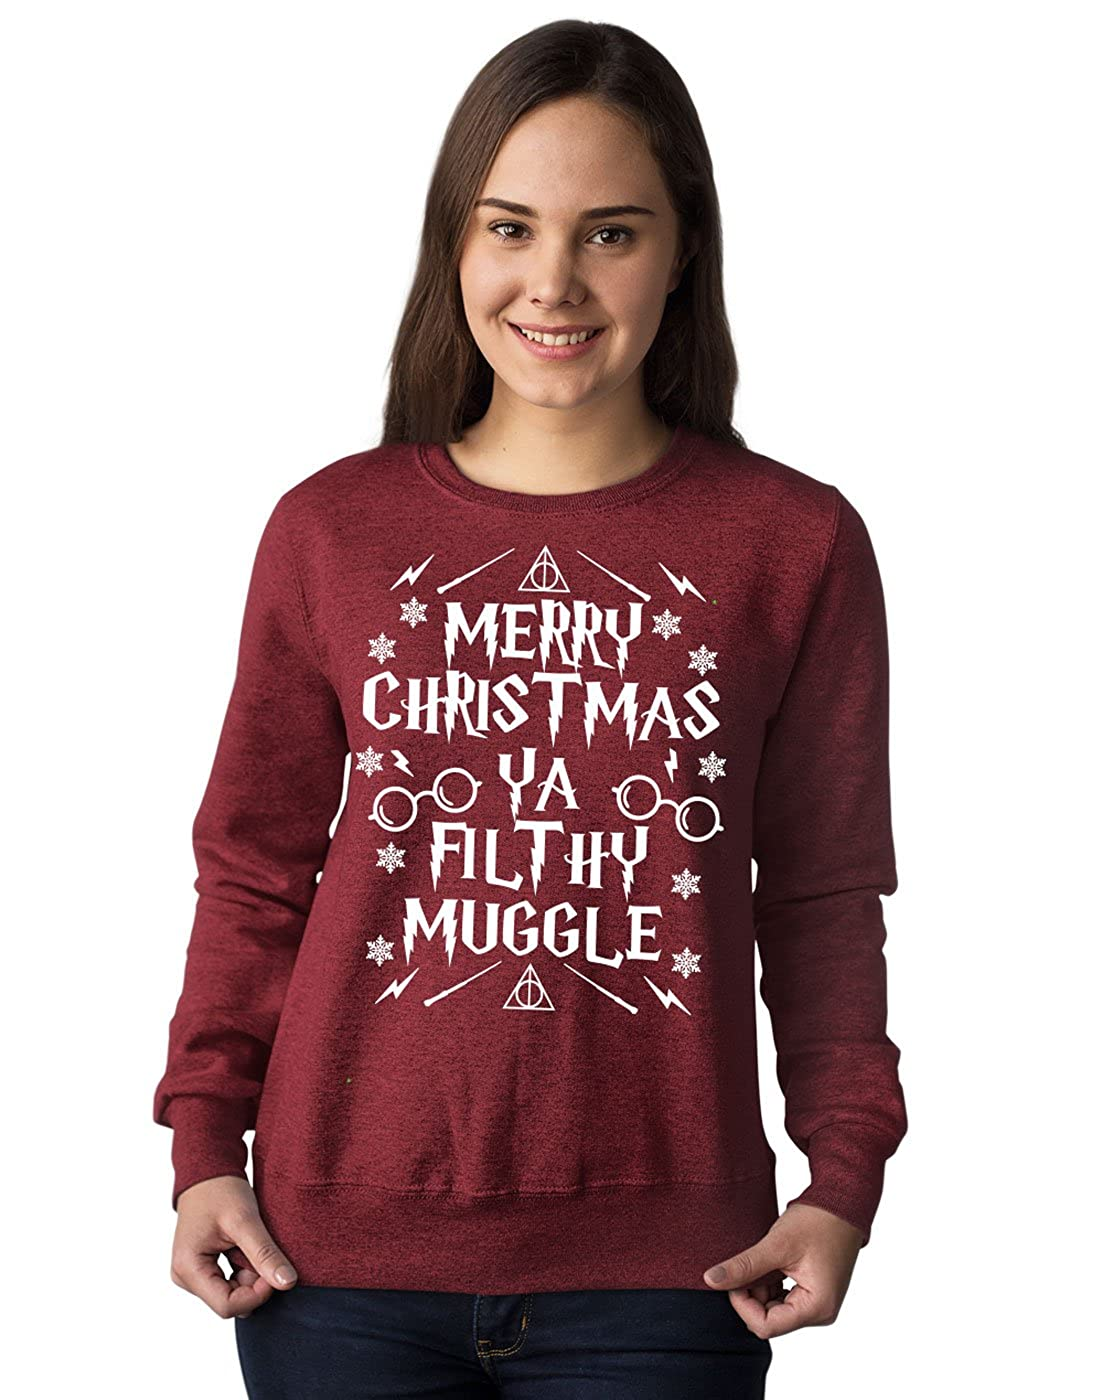 861d3403 Platform9Co Merry Christmas Ya Filthy Muggle Jumper, Harry Potter Mashup  Sweatshirt: Amazon.co.uk: Clothing